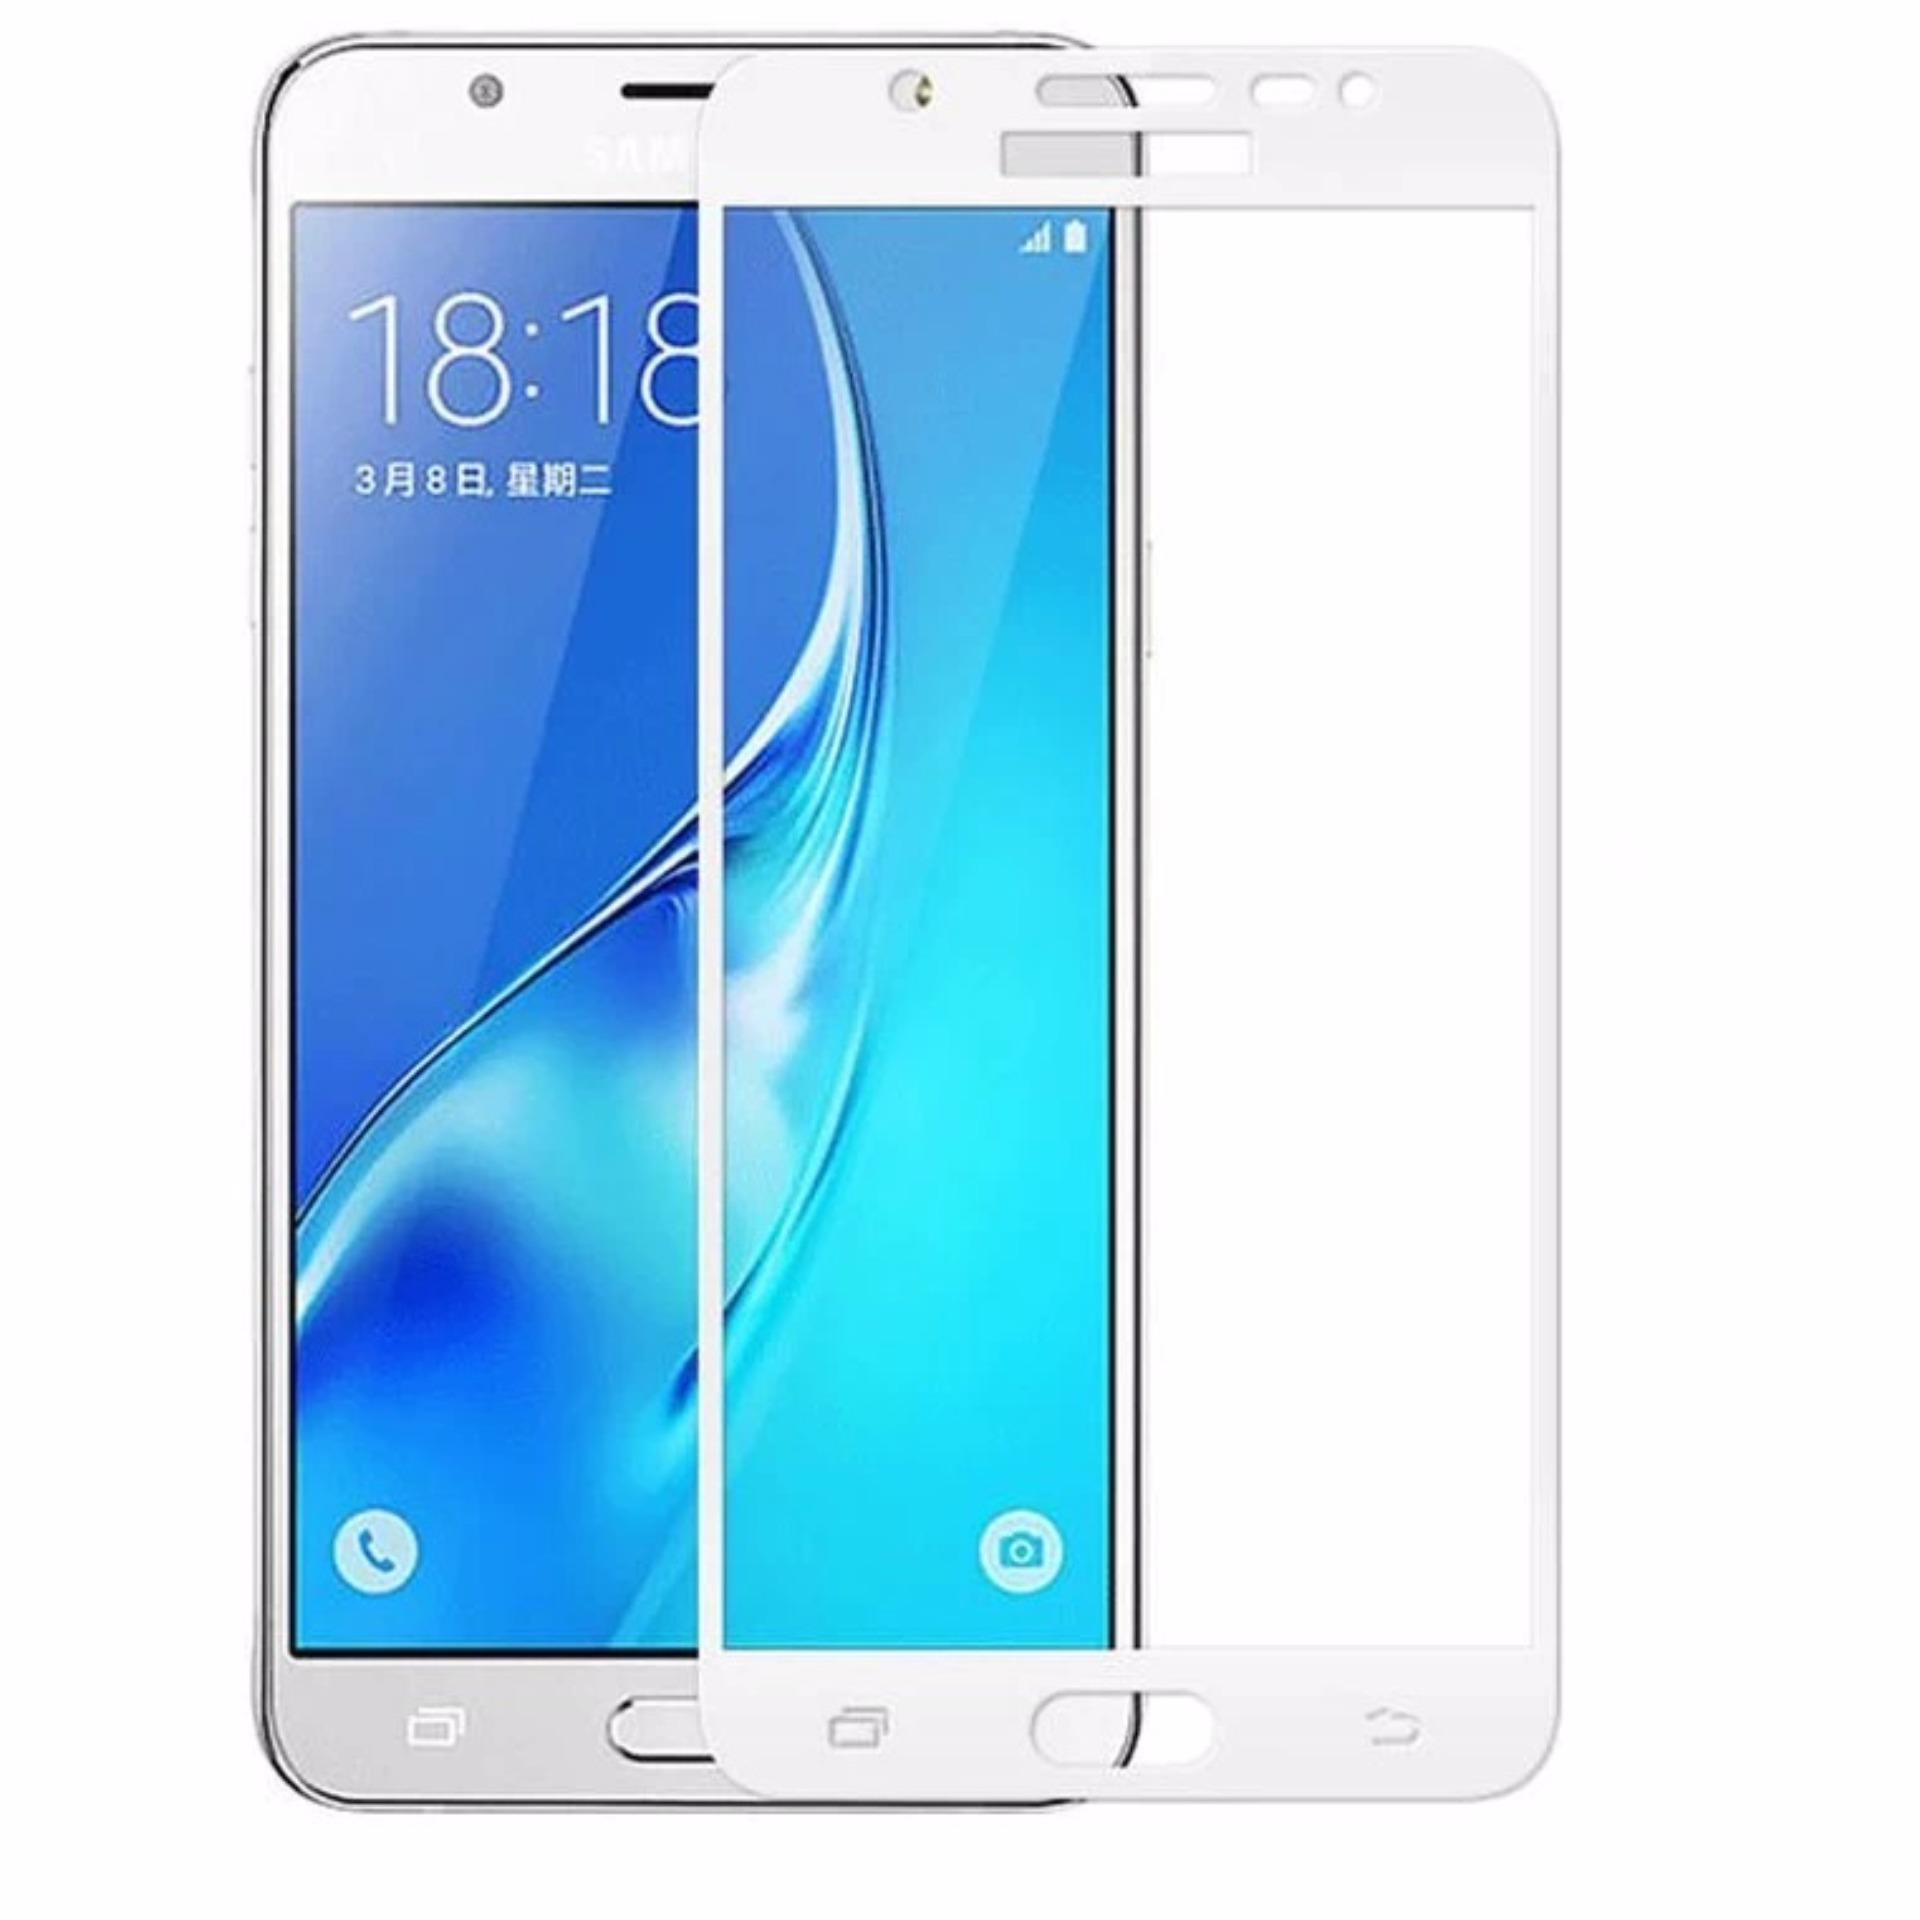 Jual Ismi Full Covered Tempered Glass For Samsung Galaxy J7 Prime 3 Mm Japan Material Glass Full Color Silver Silver Tempered Glass Protector Branded